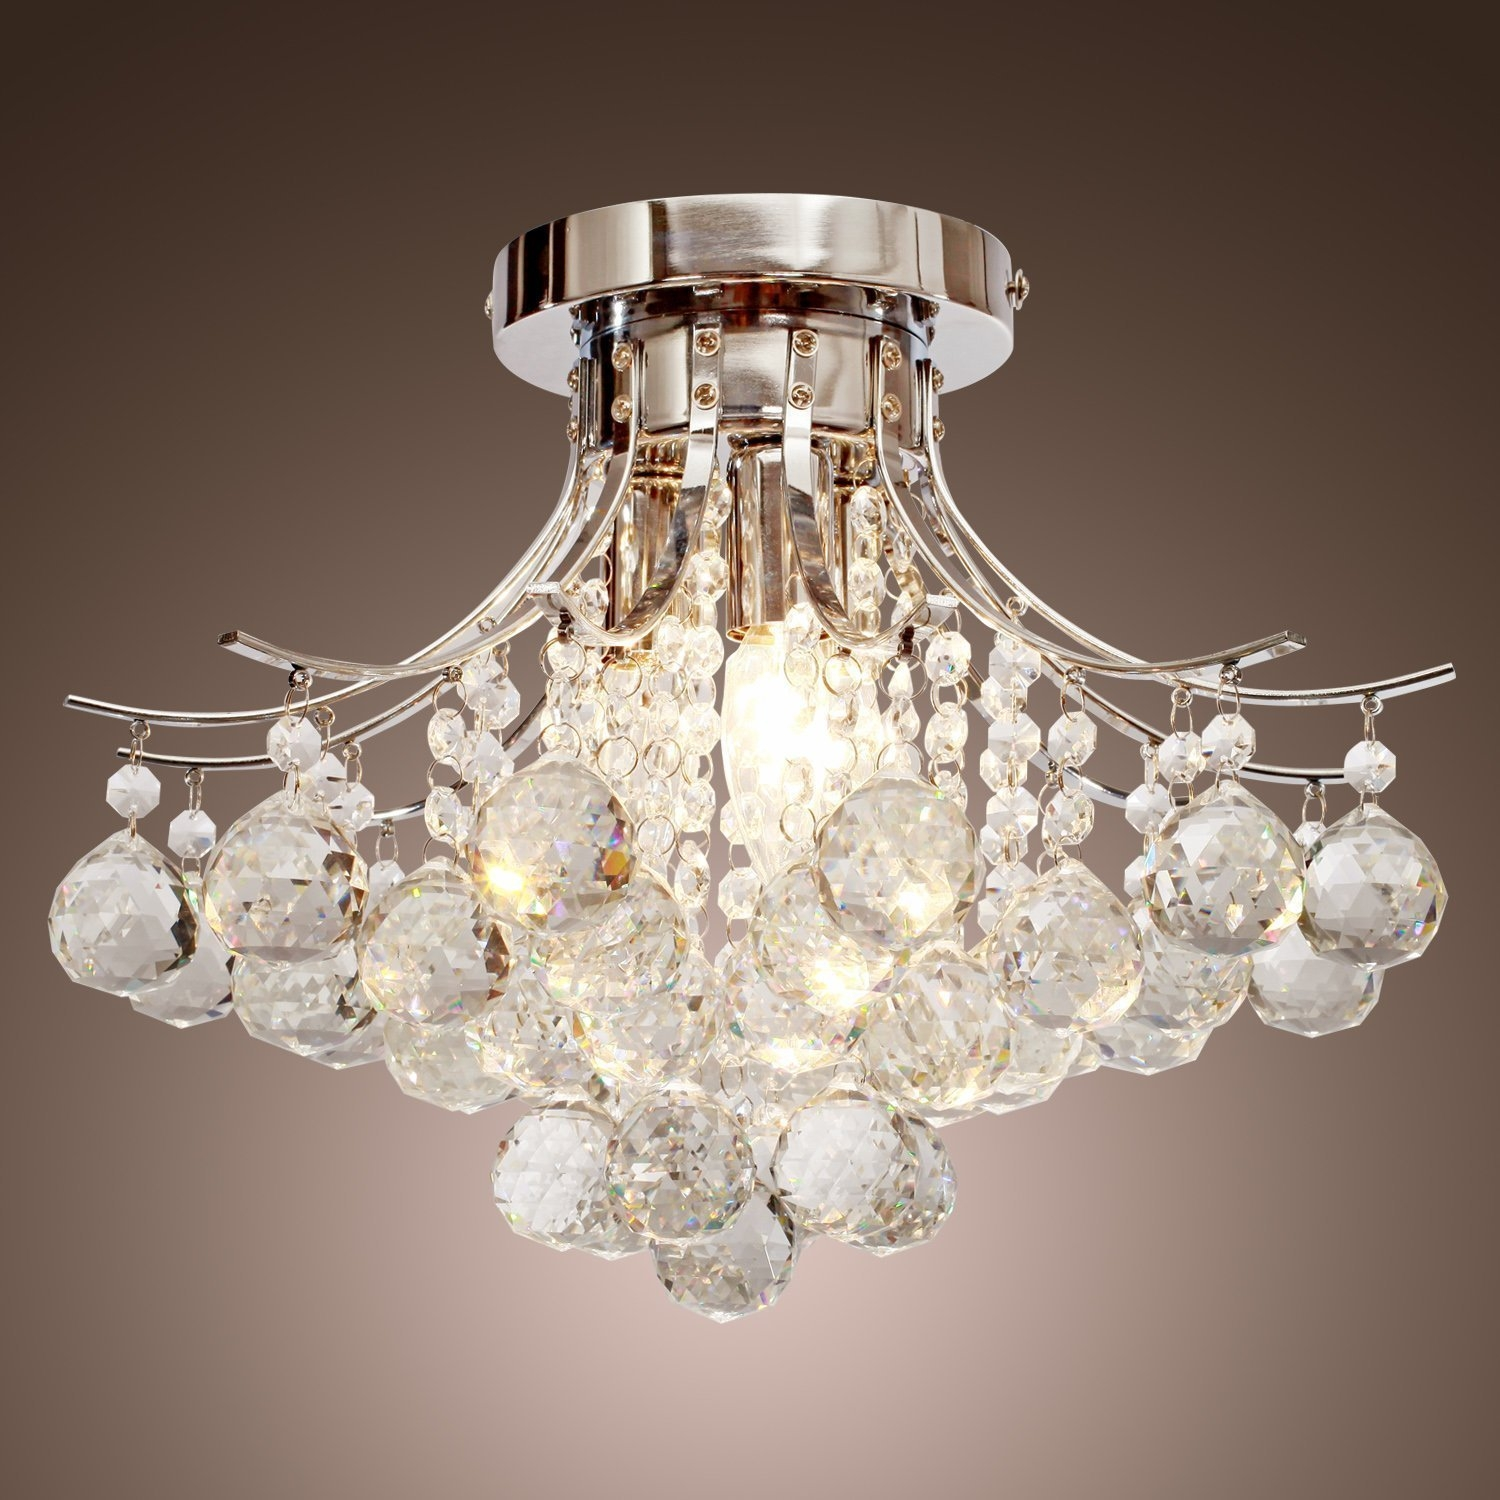 Chandeliers Amazon Lighting Ceiling Fans Ceiling Lights Within Small Chandeliers For Low Ceilings (View 5 of 12)